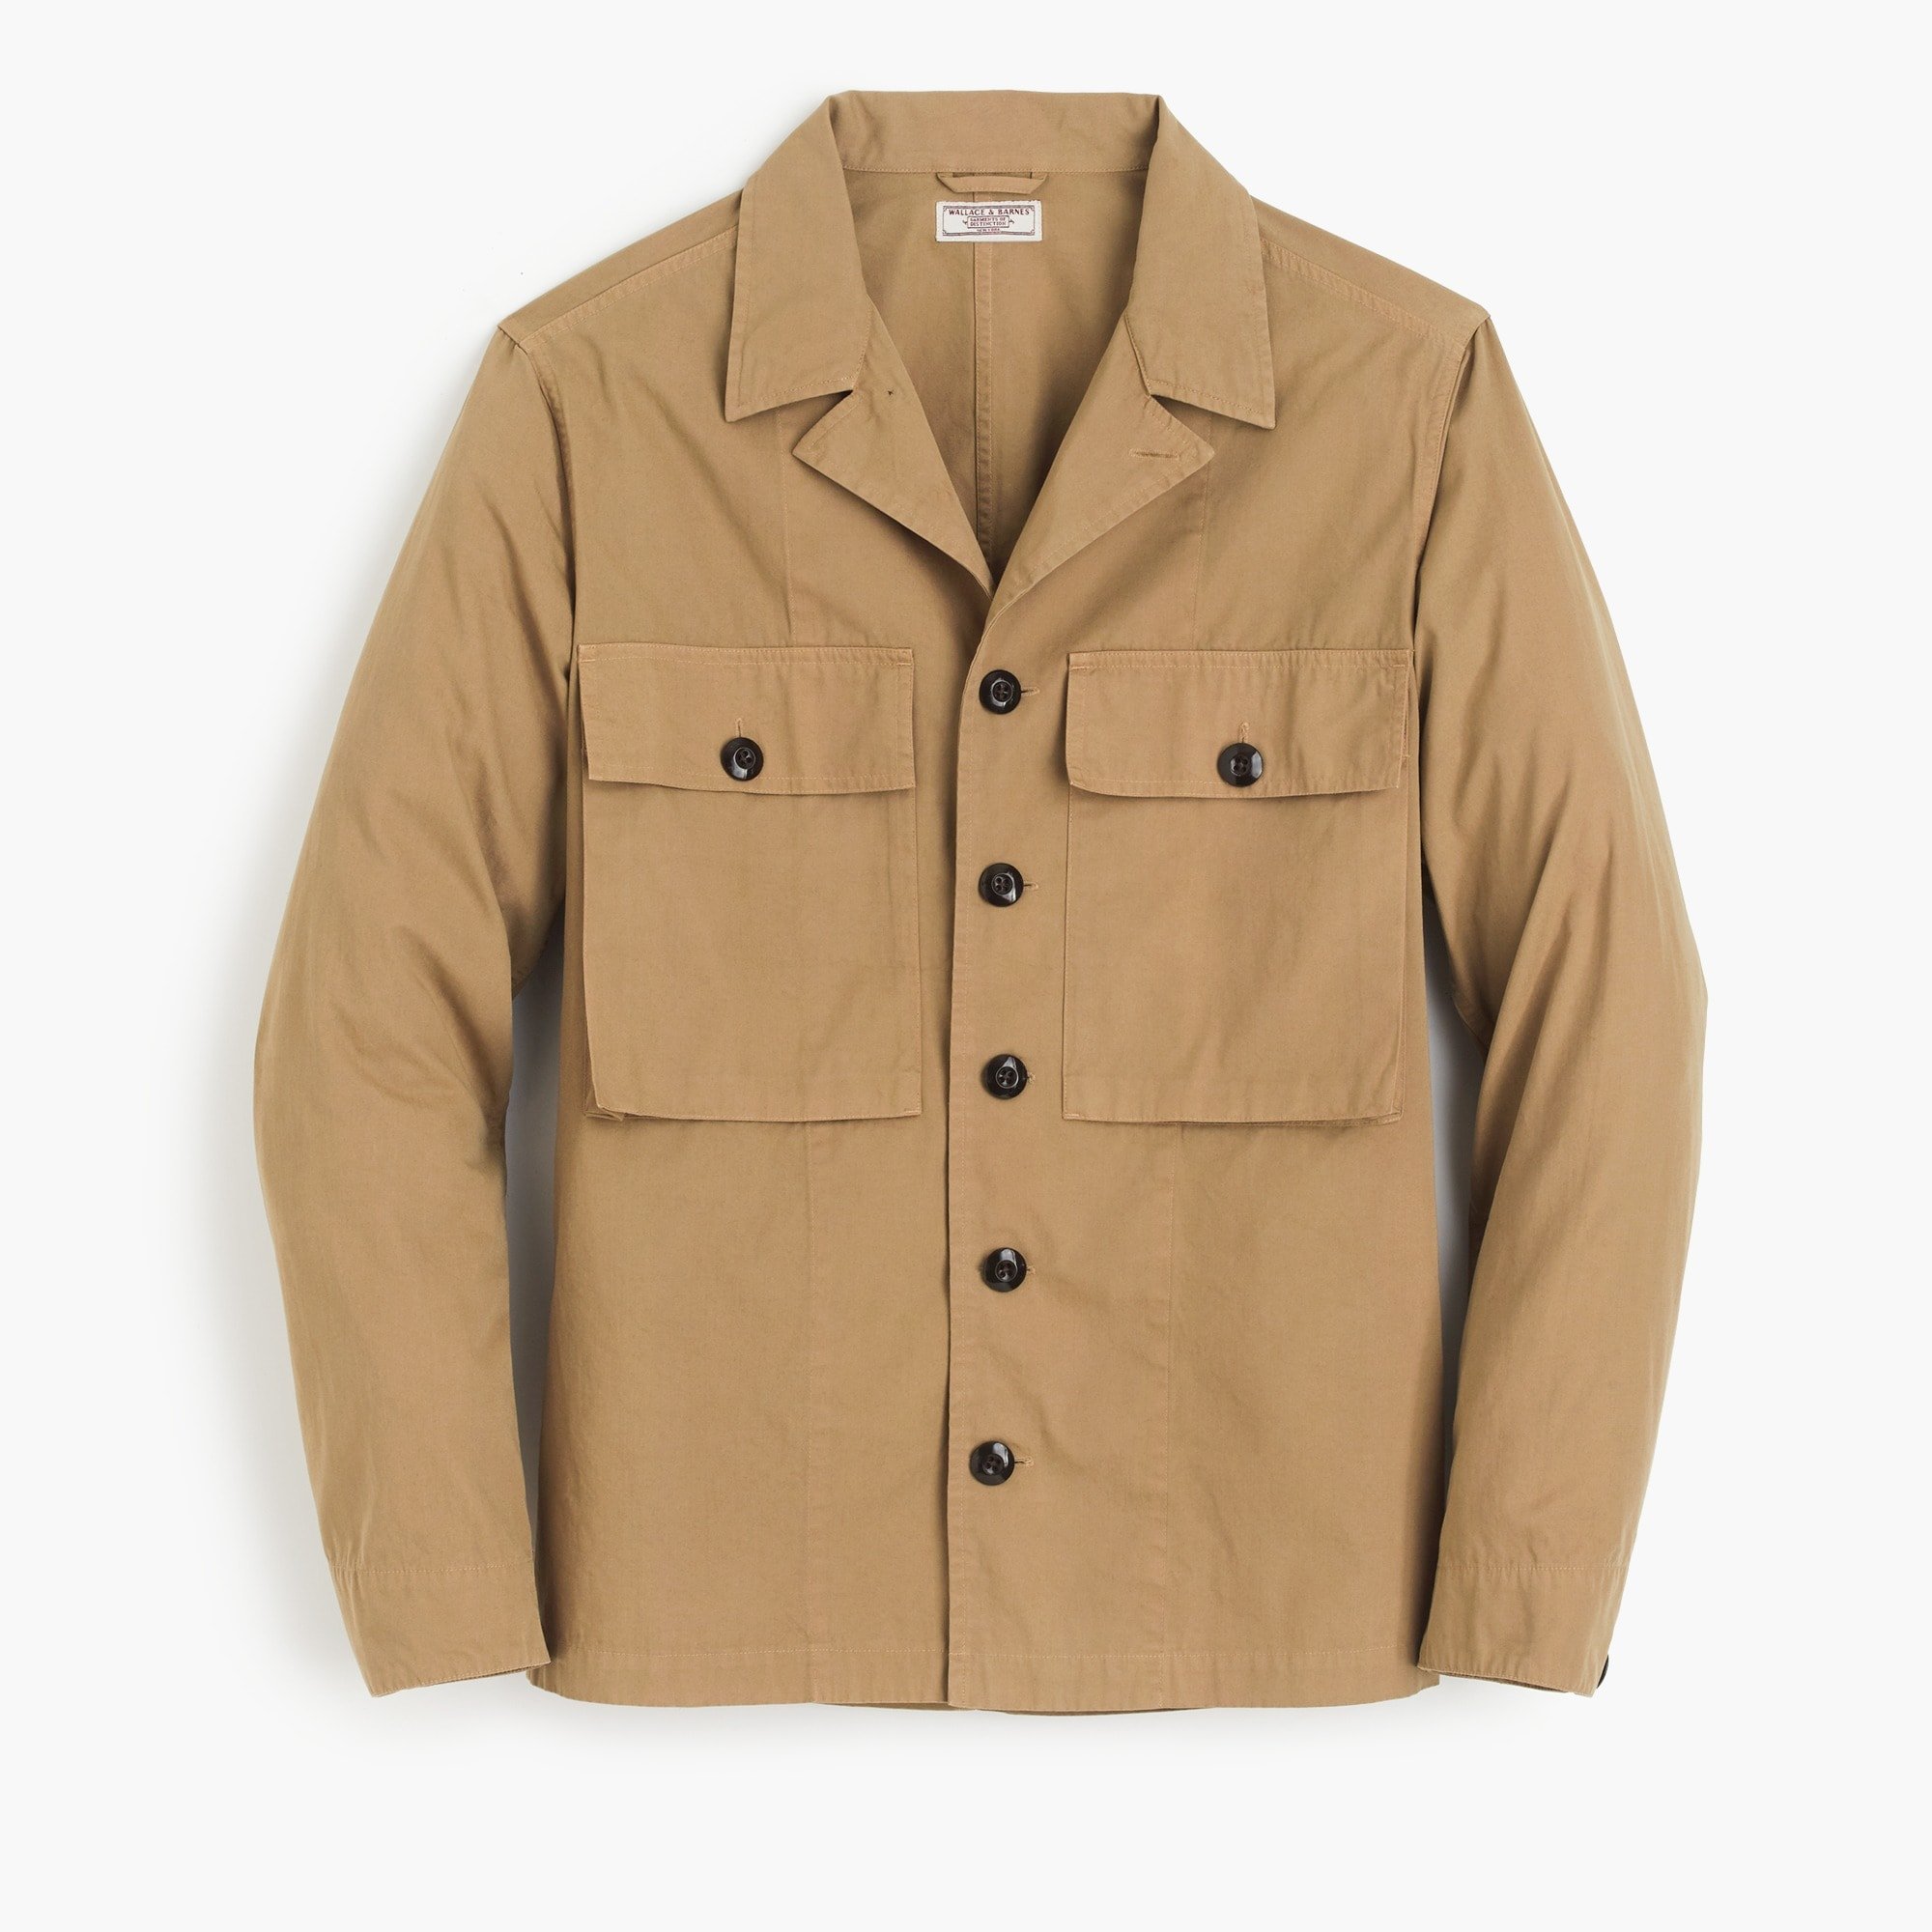 Wallace & Barnes military jacket in khaki